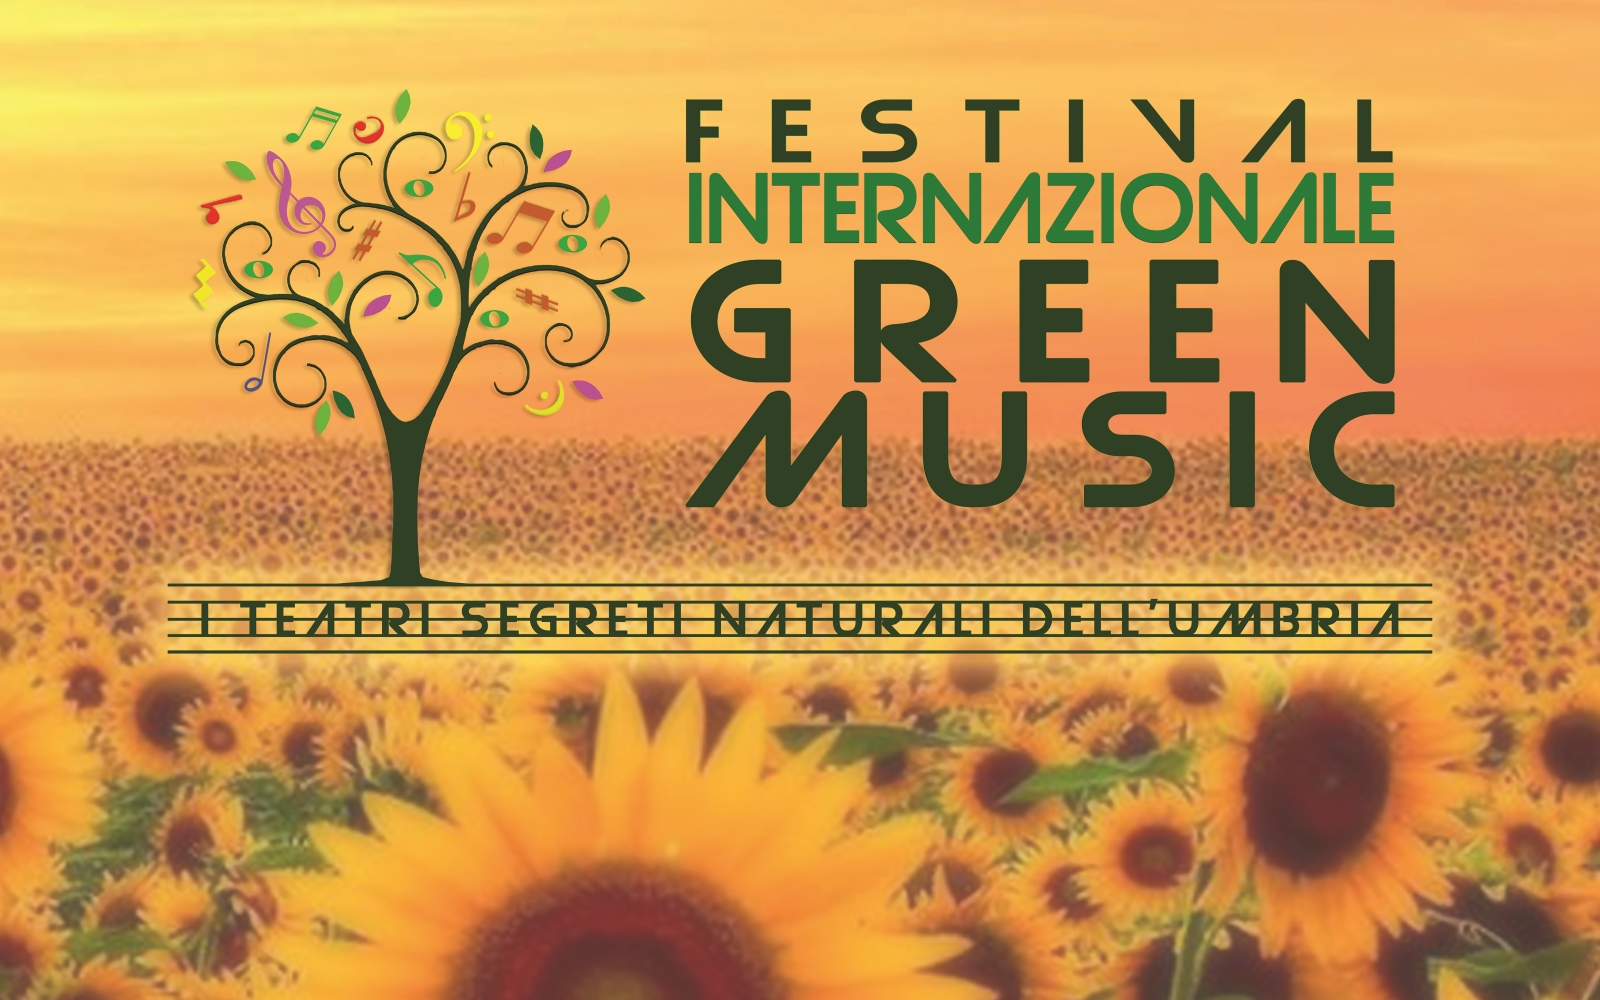 festival internazionale green music